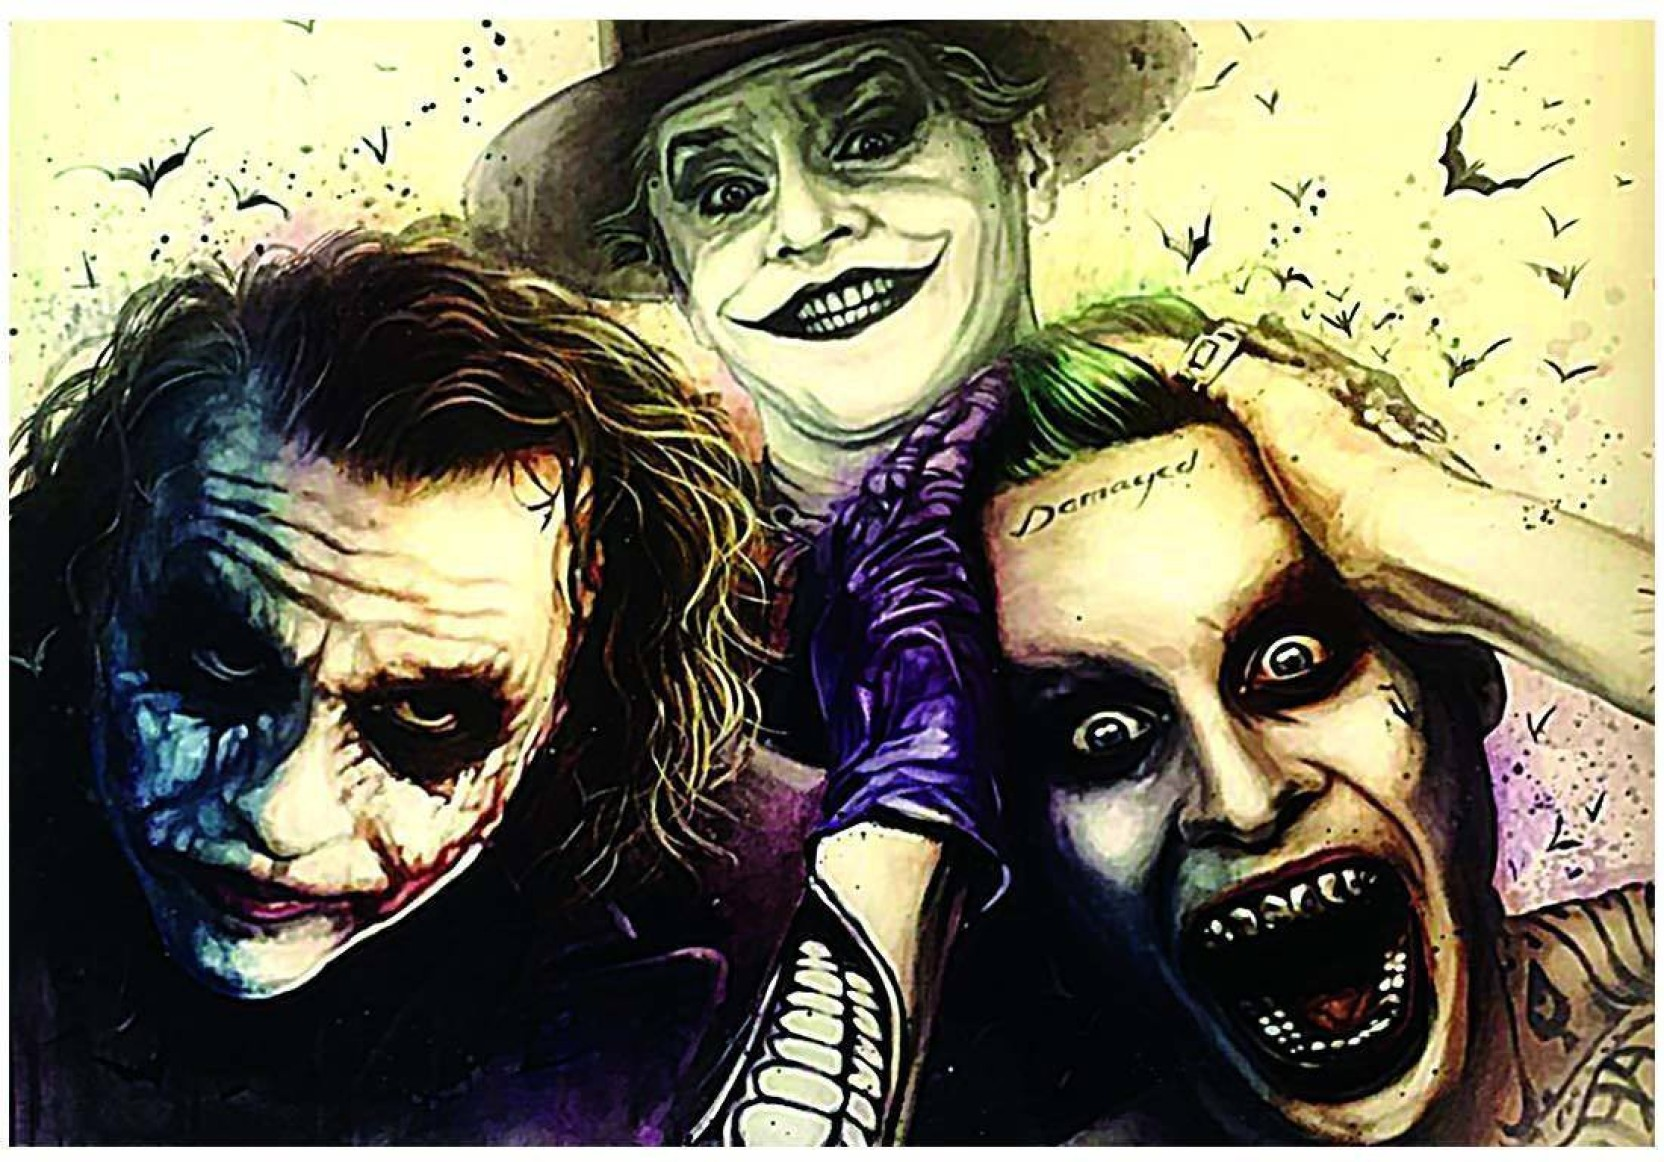 All 3 main jokers heath ledger jack nicholson and jared leto poster a3 13 x 19 inches paper print 19 inch x 13 inch rolled